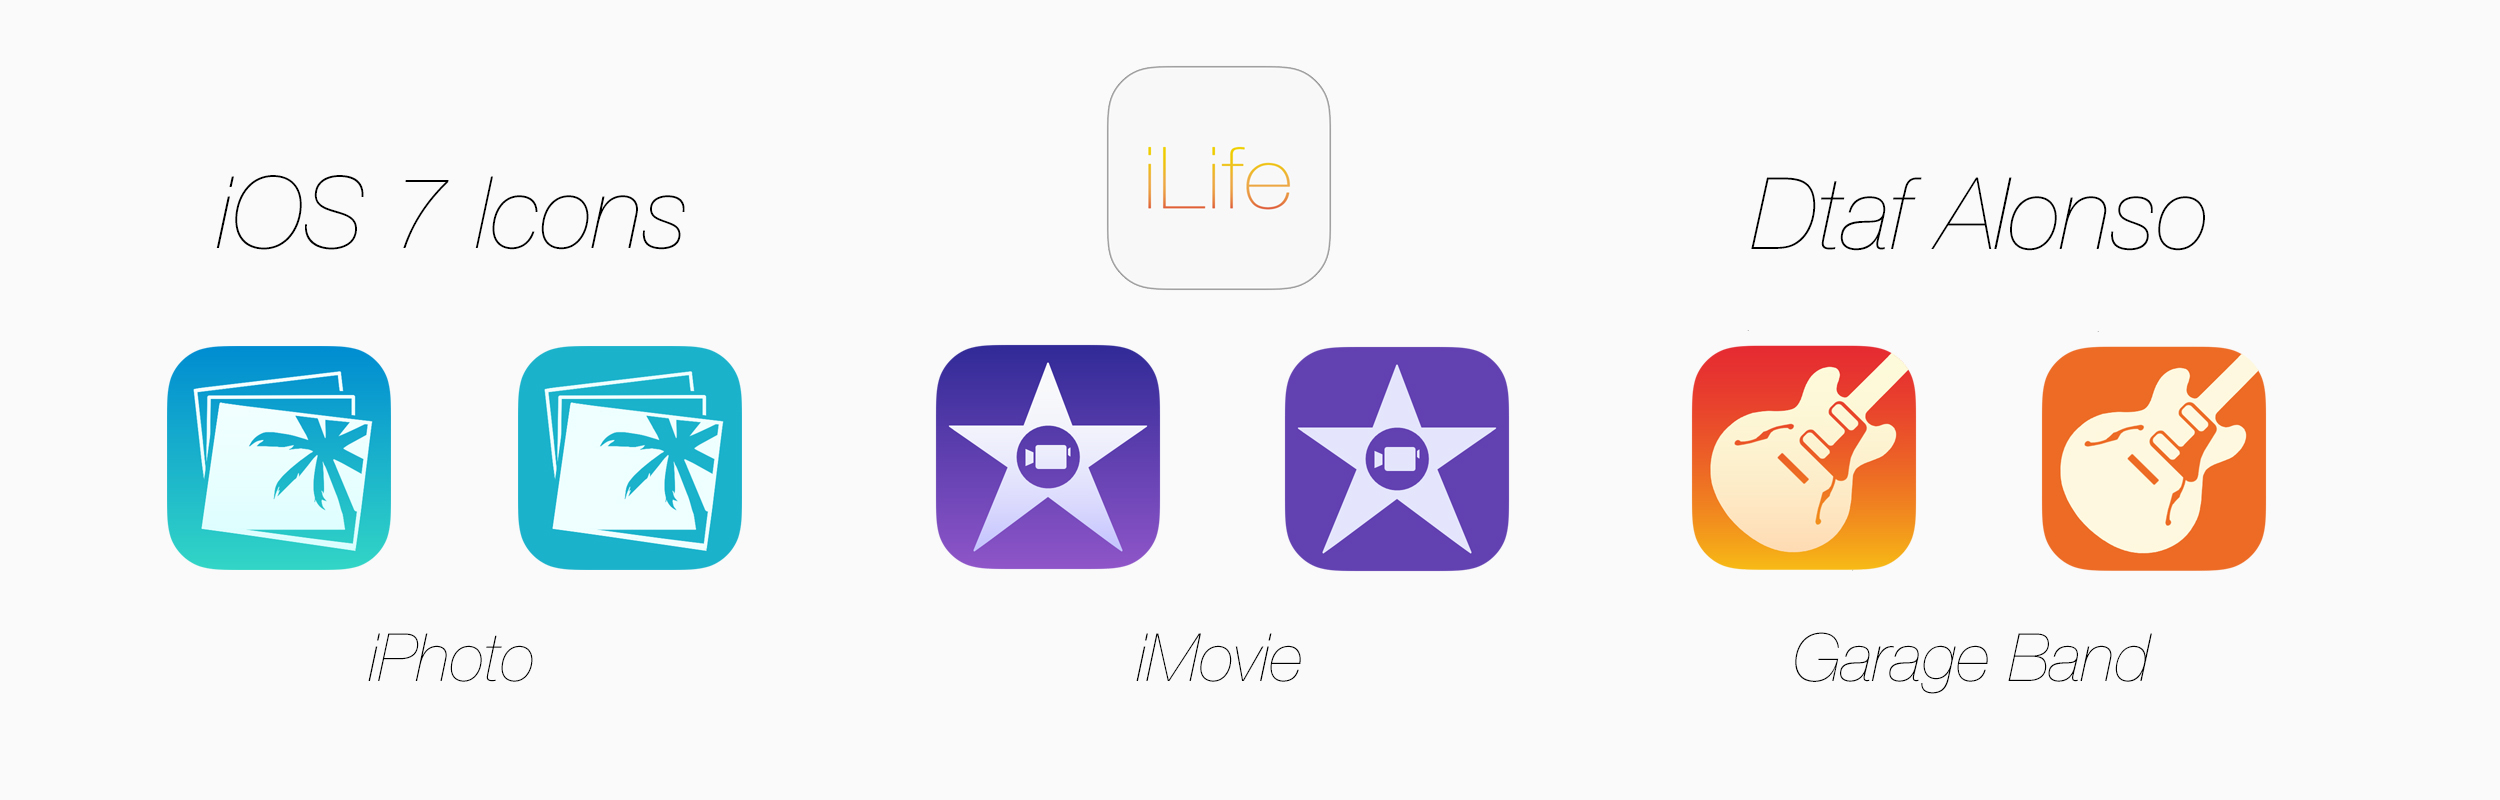 download imovie mac os x